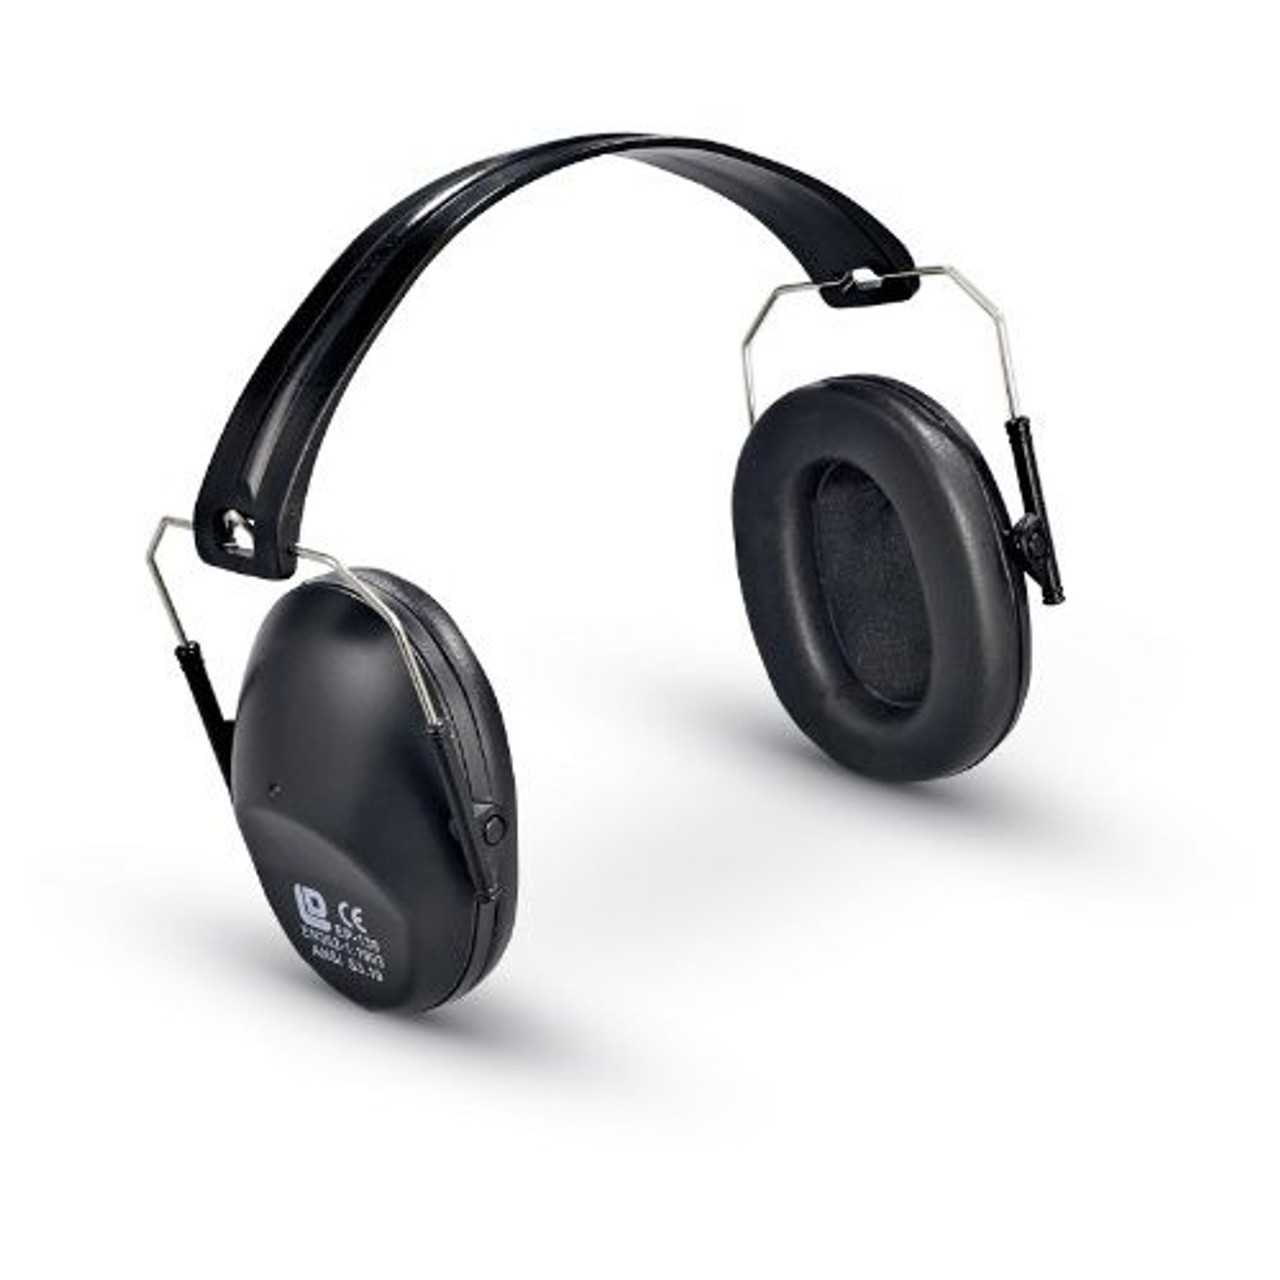 dbb9f96bf54 ... Autism Headphones - Nose Reduction Ear Muffs for for Kids and Teens